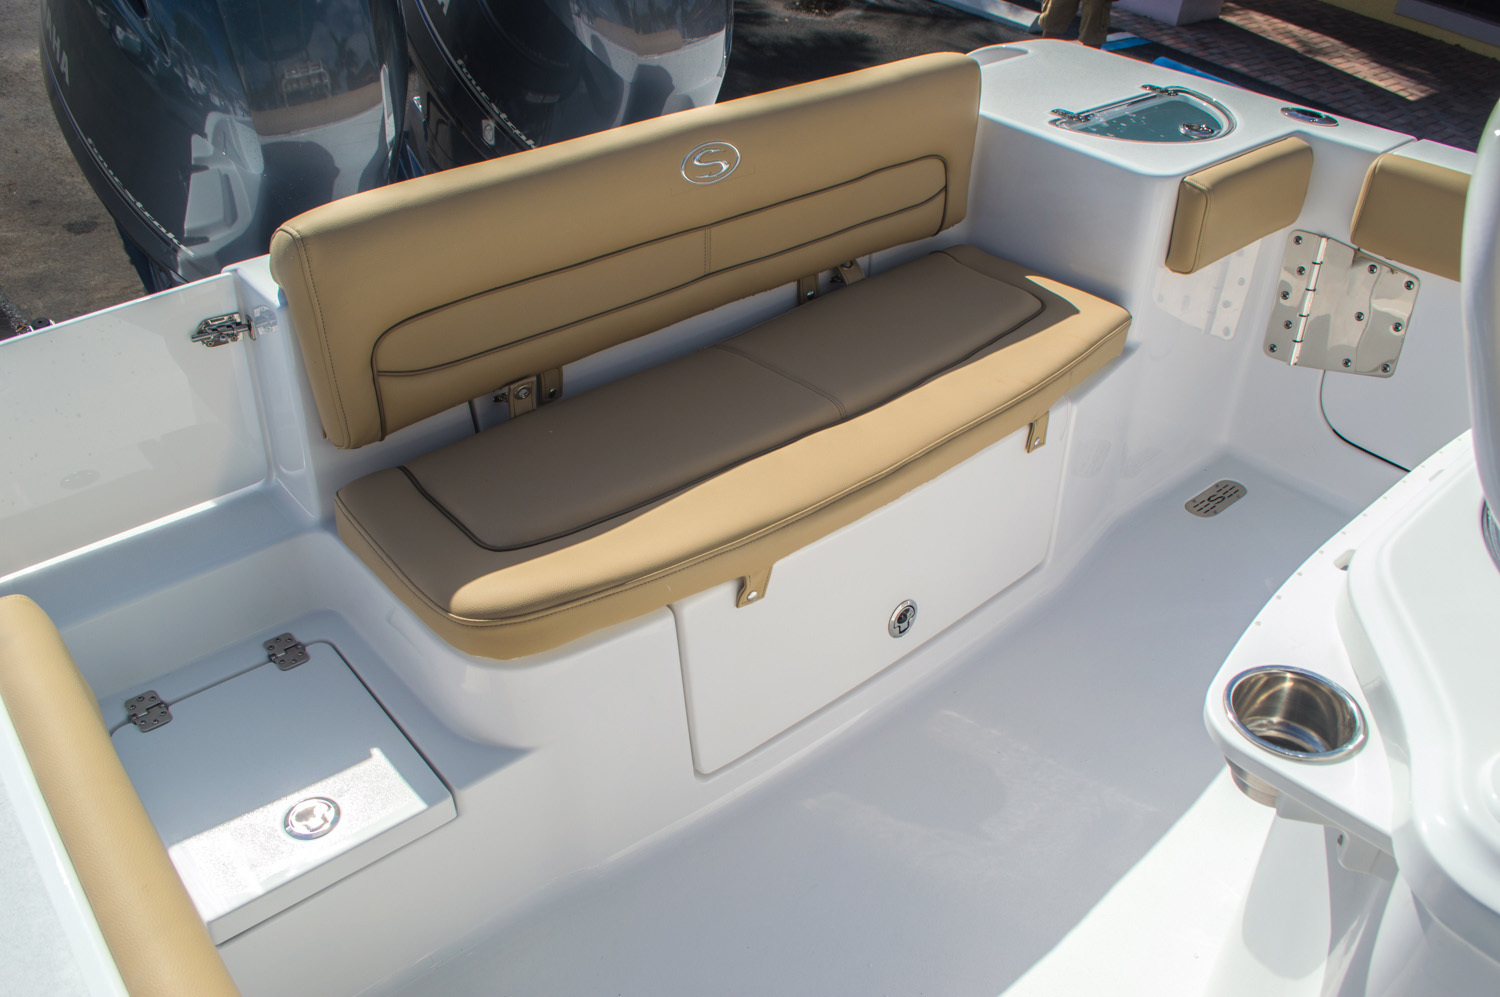 Thumbnail 13 for New 2016 Sportsman Heritage 251 Center Console boat for sale in Miami, FL